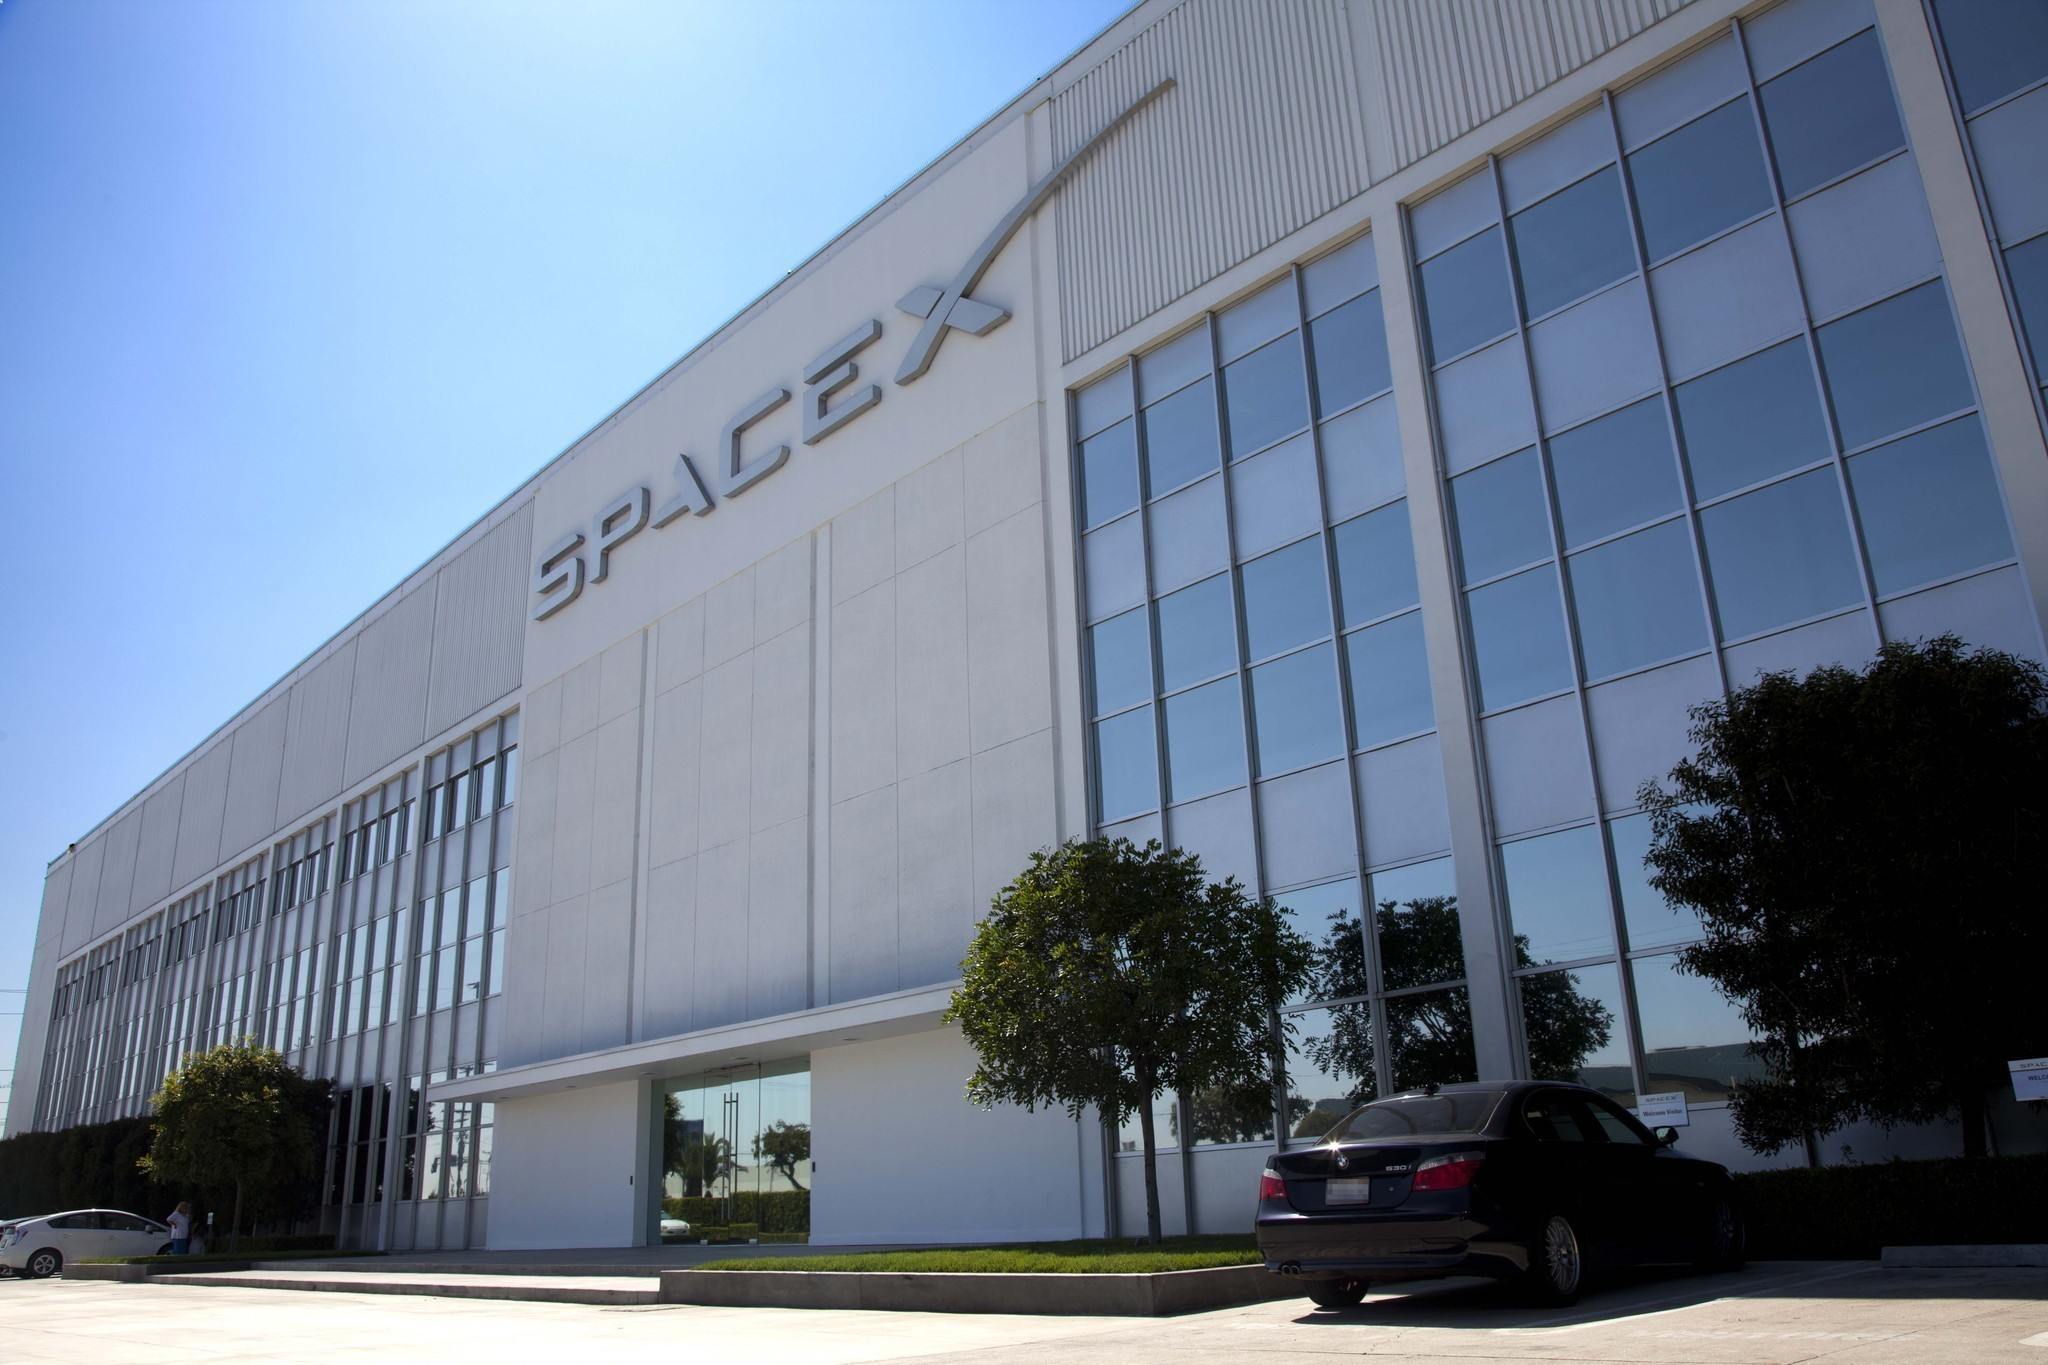 spacex headquarters in hawthorne acquired by new jersey investors la times